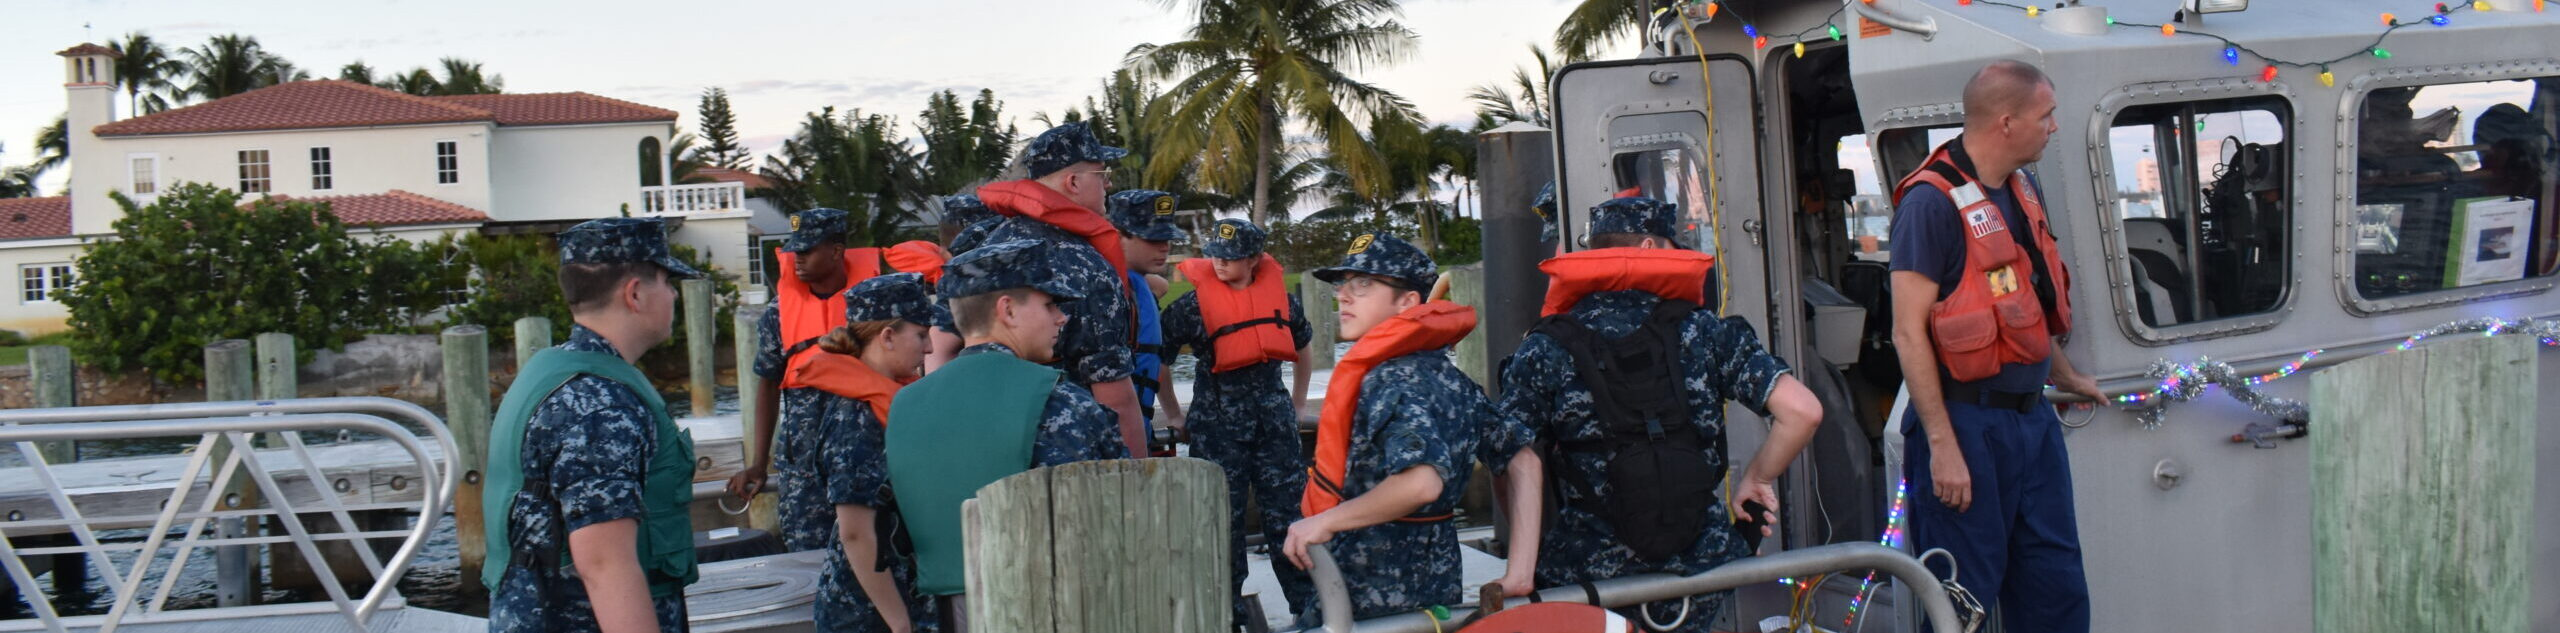 Cadets prepare for navigation training with Coast Guard